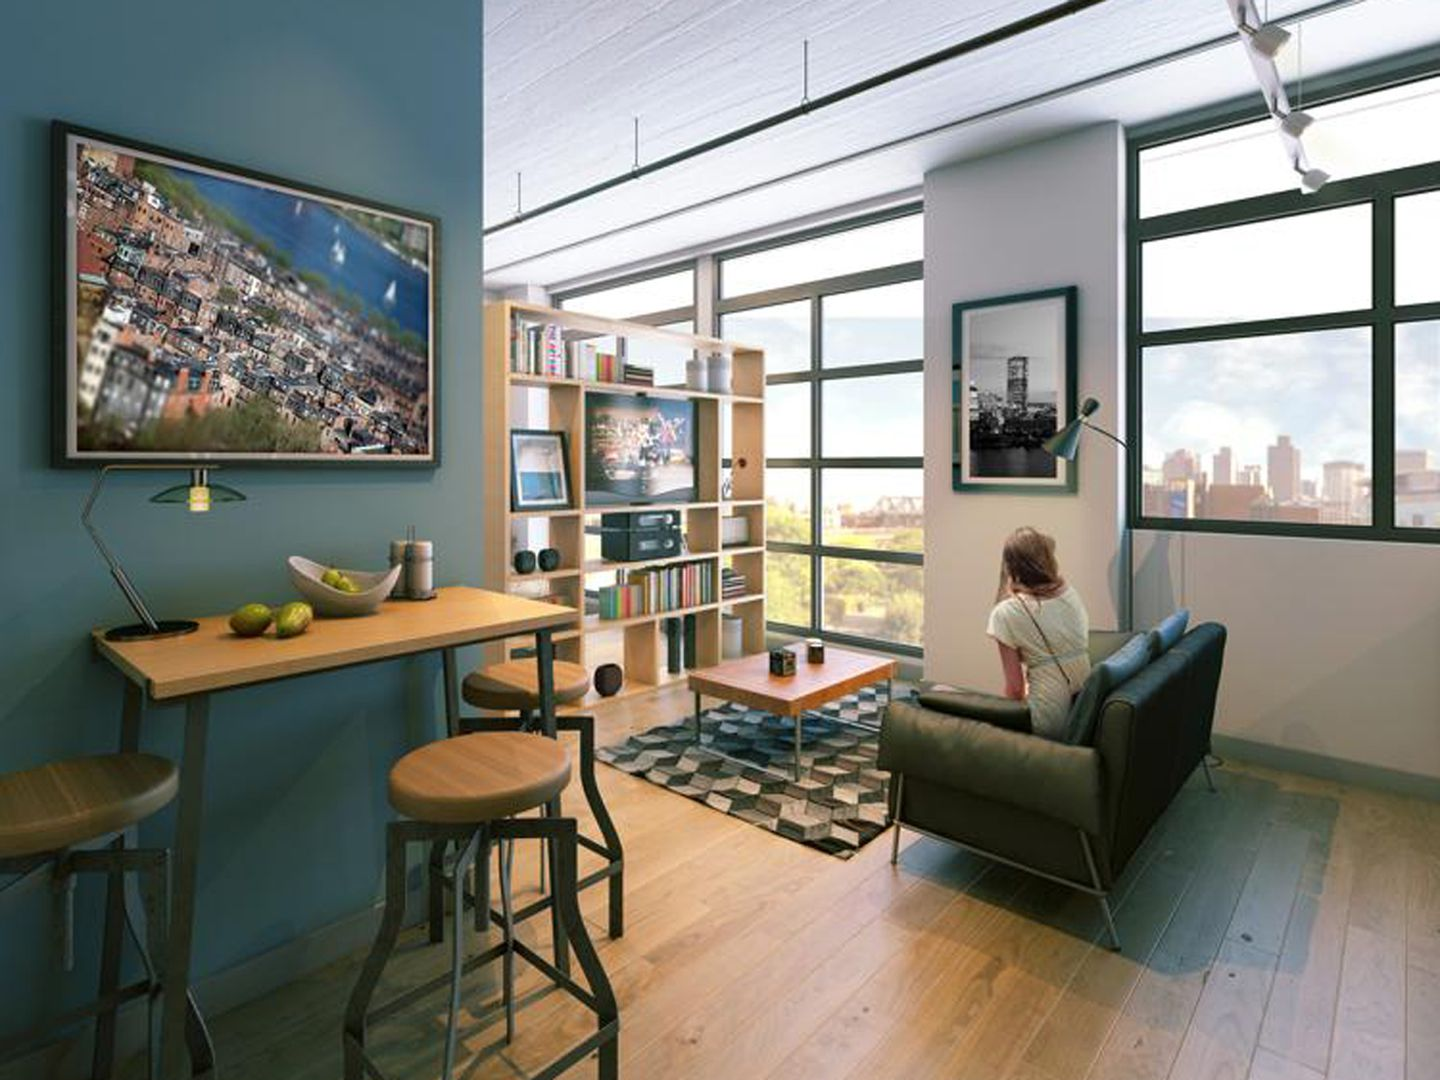 Avalon North Point Lofts Offers Several Compact Options Including This 421 Square Foot